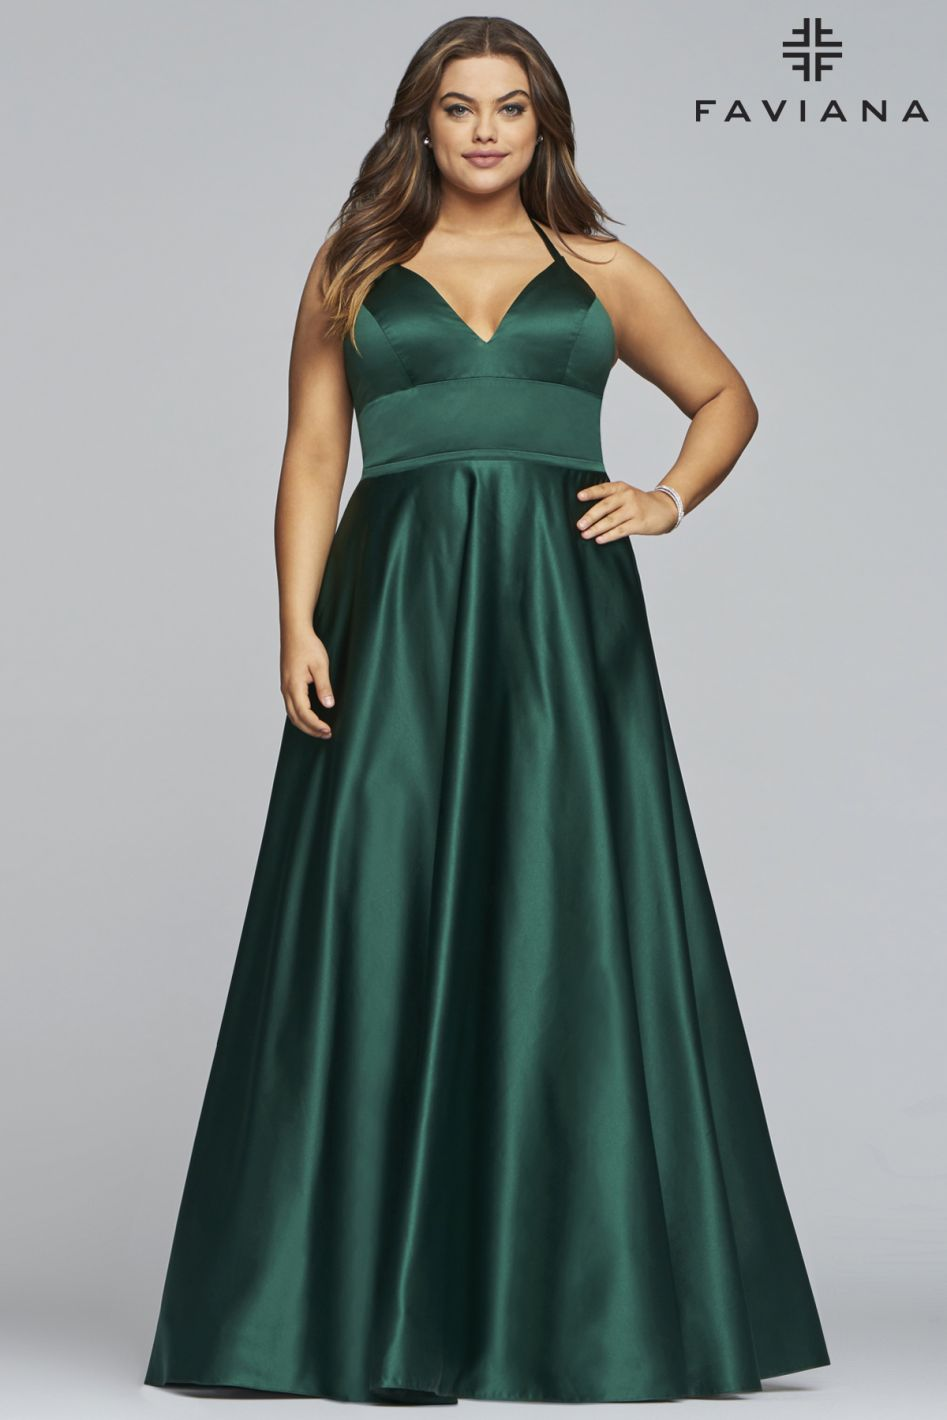 FAVIANA PROM DRESS #9466